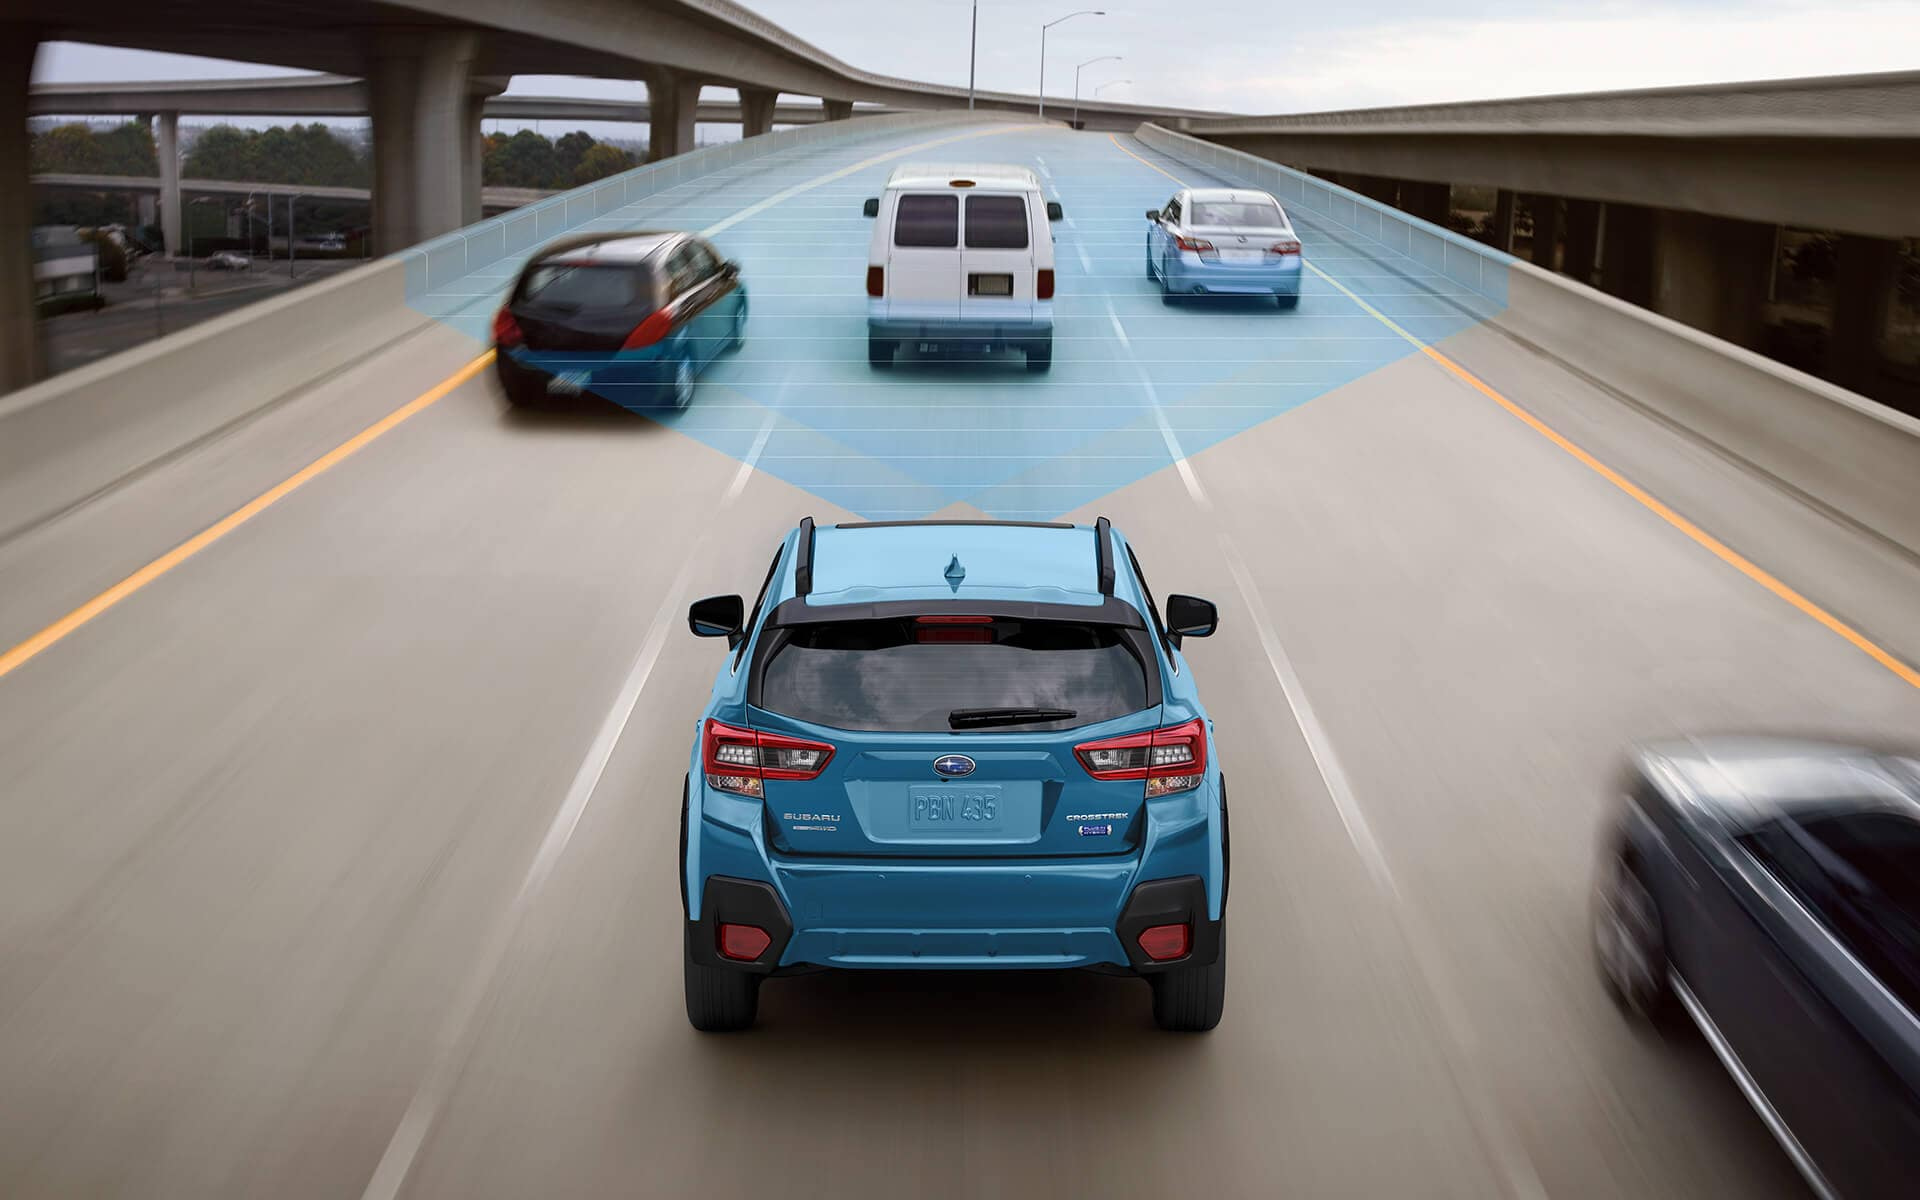 A 2020 Crosstrek Hybrid driving on a freeway with the EyeSight® Driver Assist Technology sensors illustrated with blue overlay.